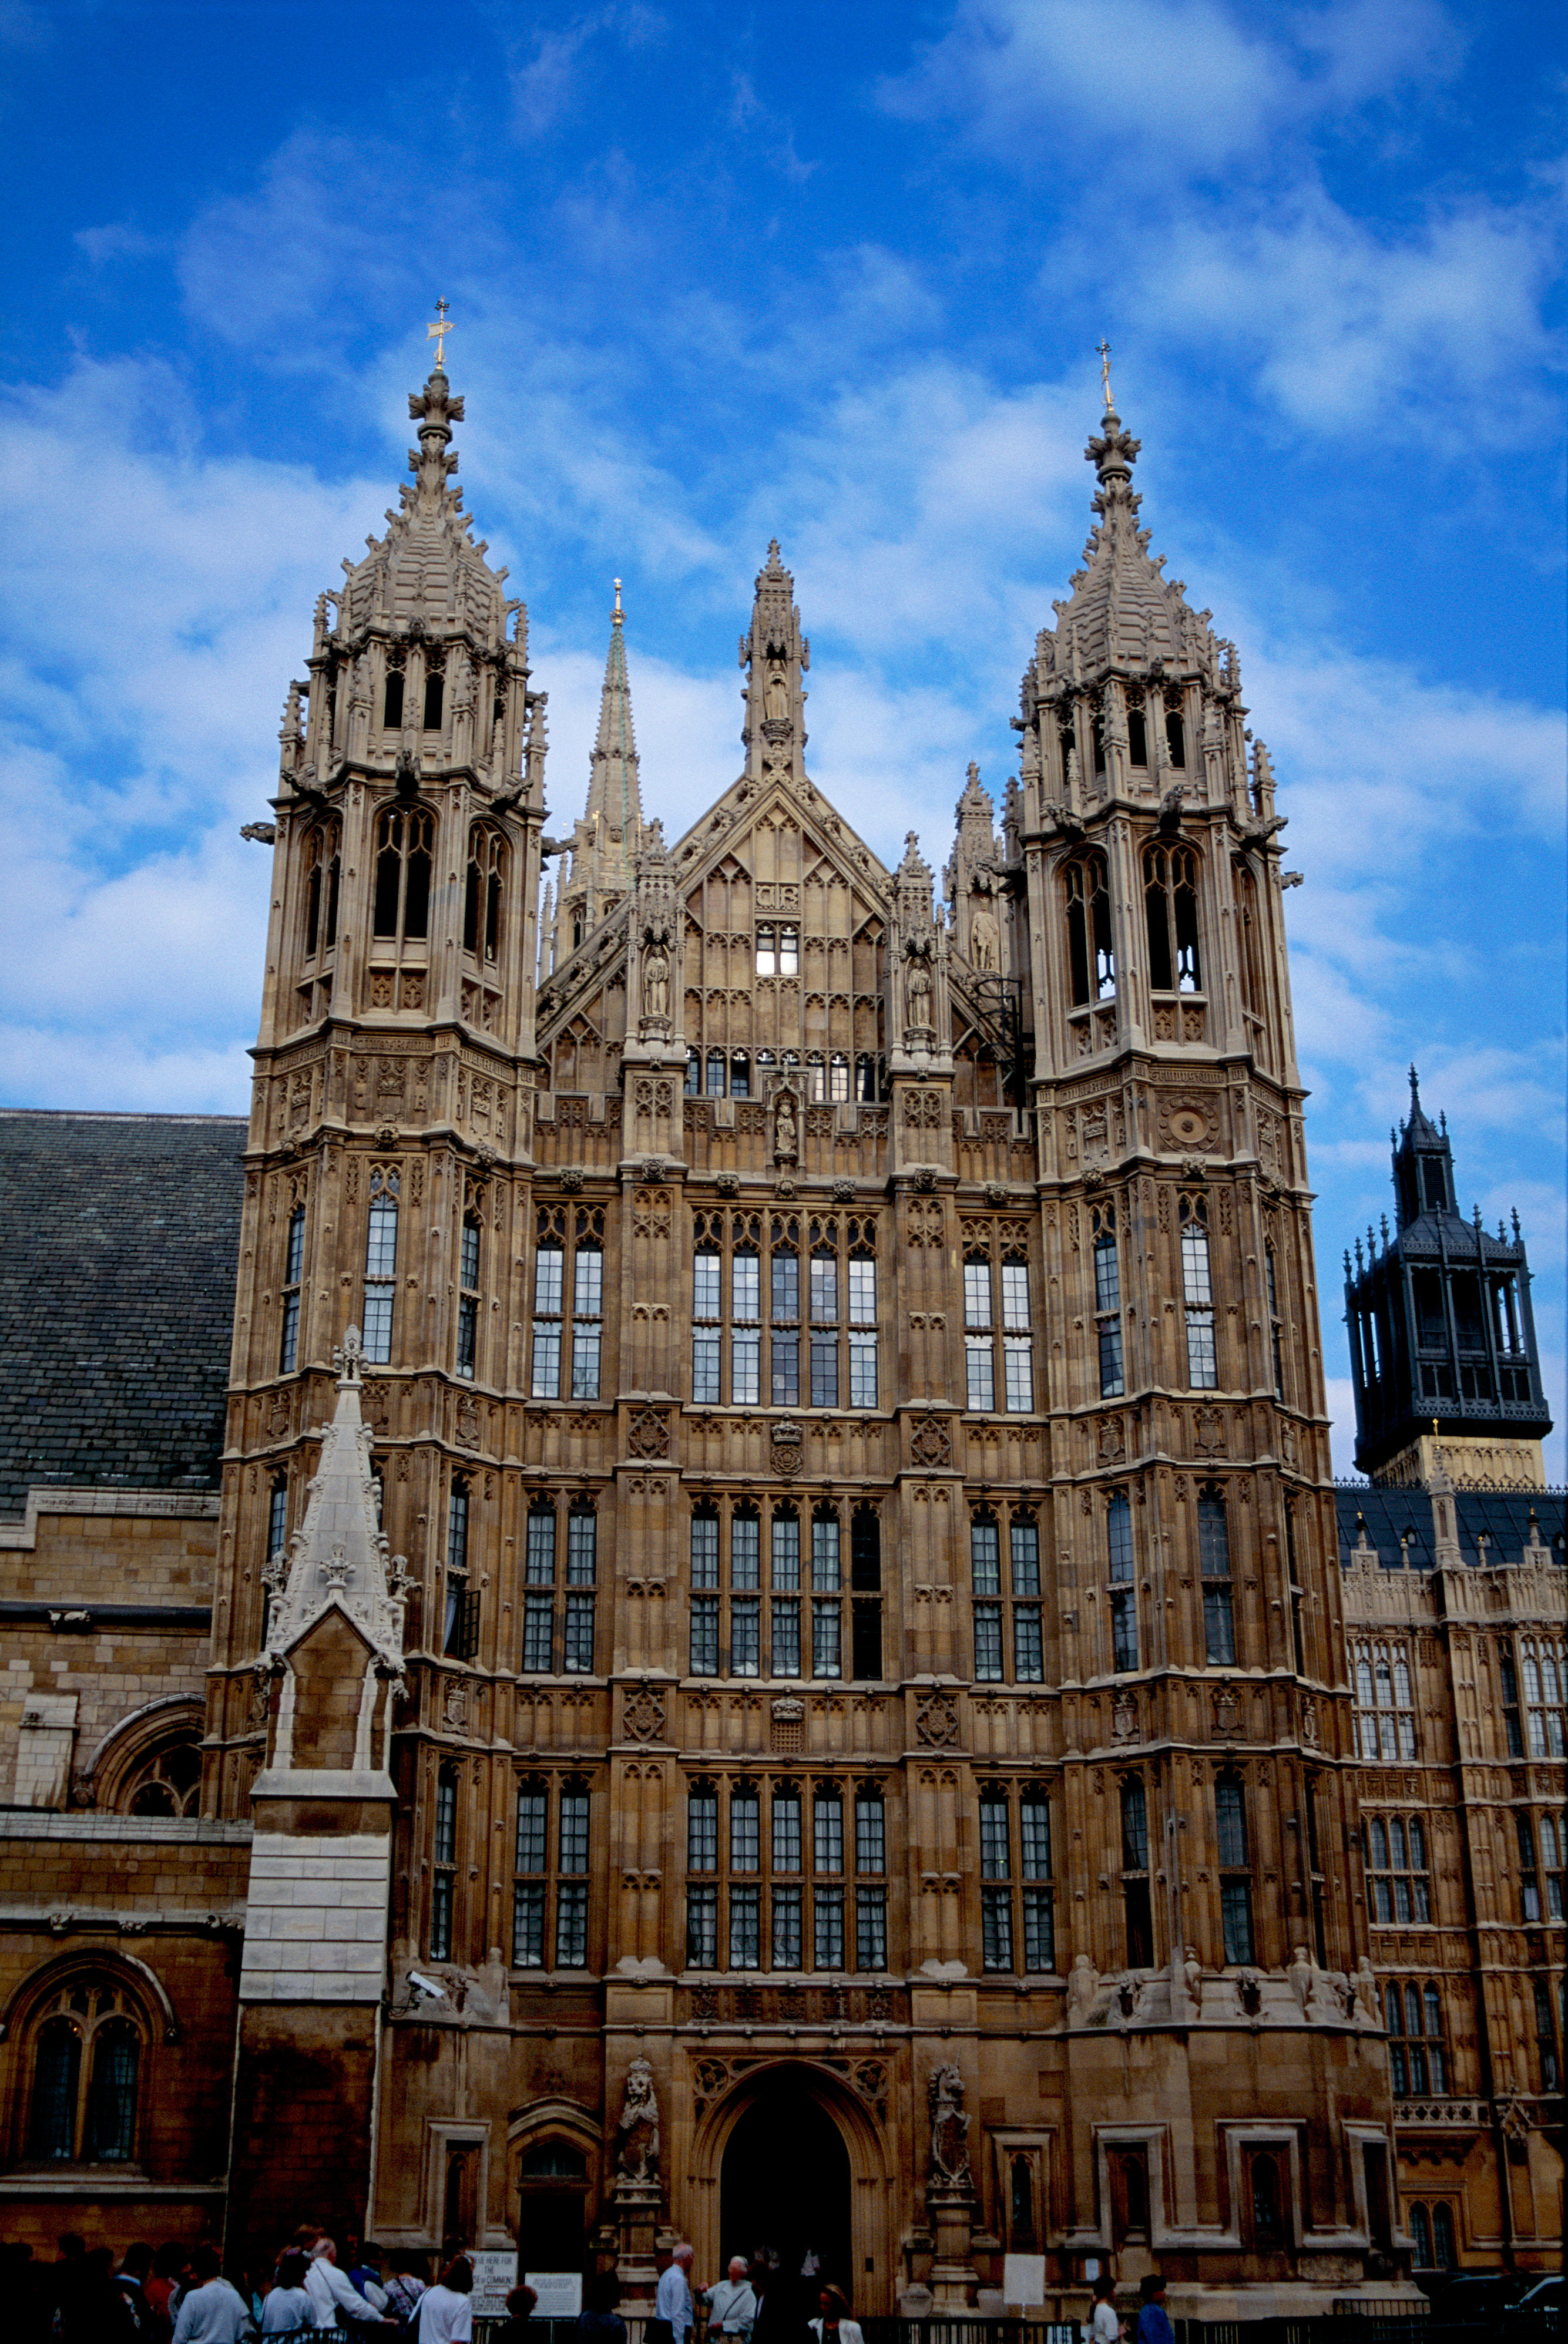 Parliament London England srgb HD Wallpaper